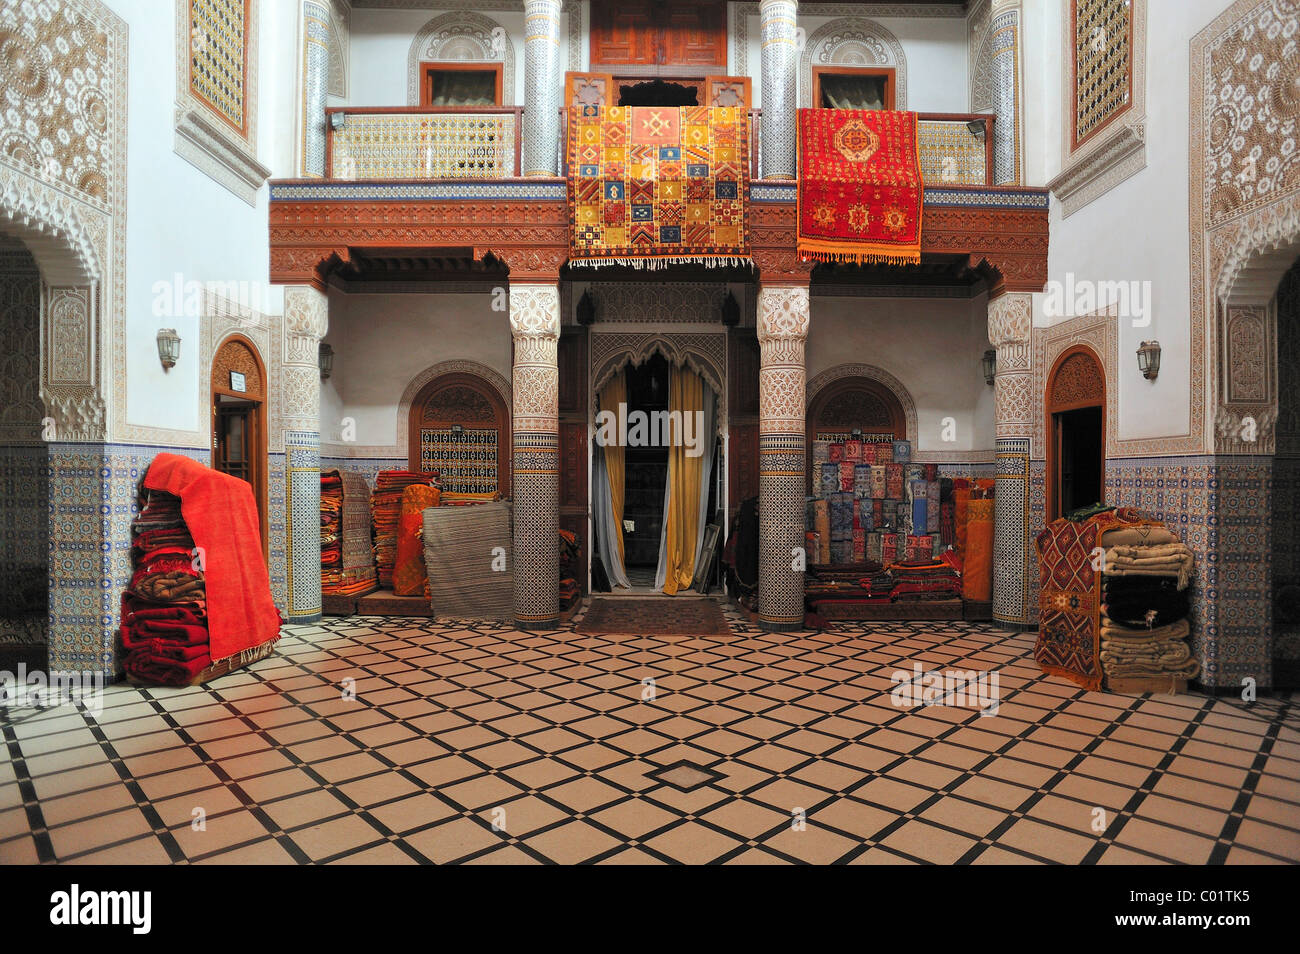 Carpets of a carpet dealer, displayed for sale in an old Riyadh, palace courtyard, Marrakech, Morocco, Africa - Stock Image